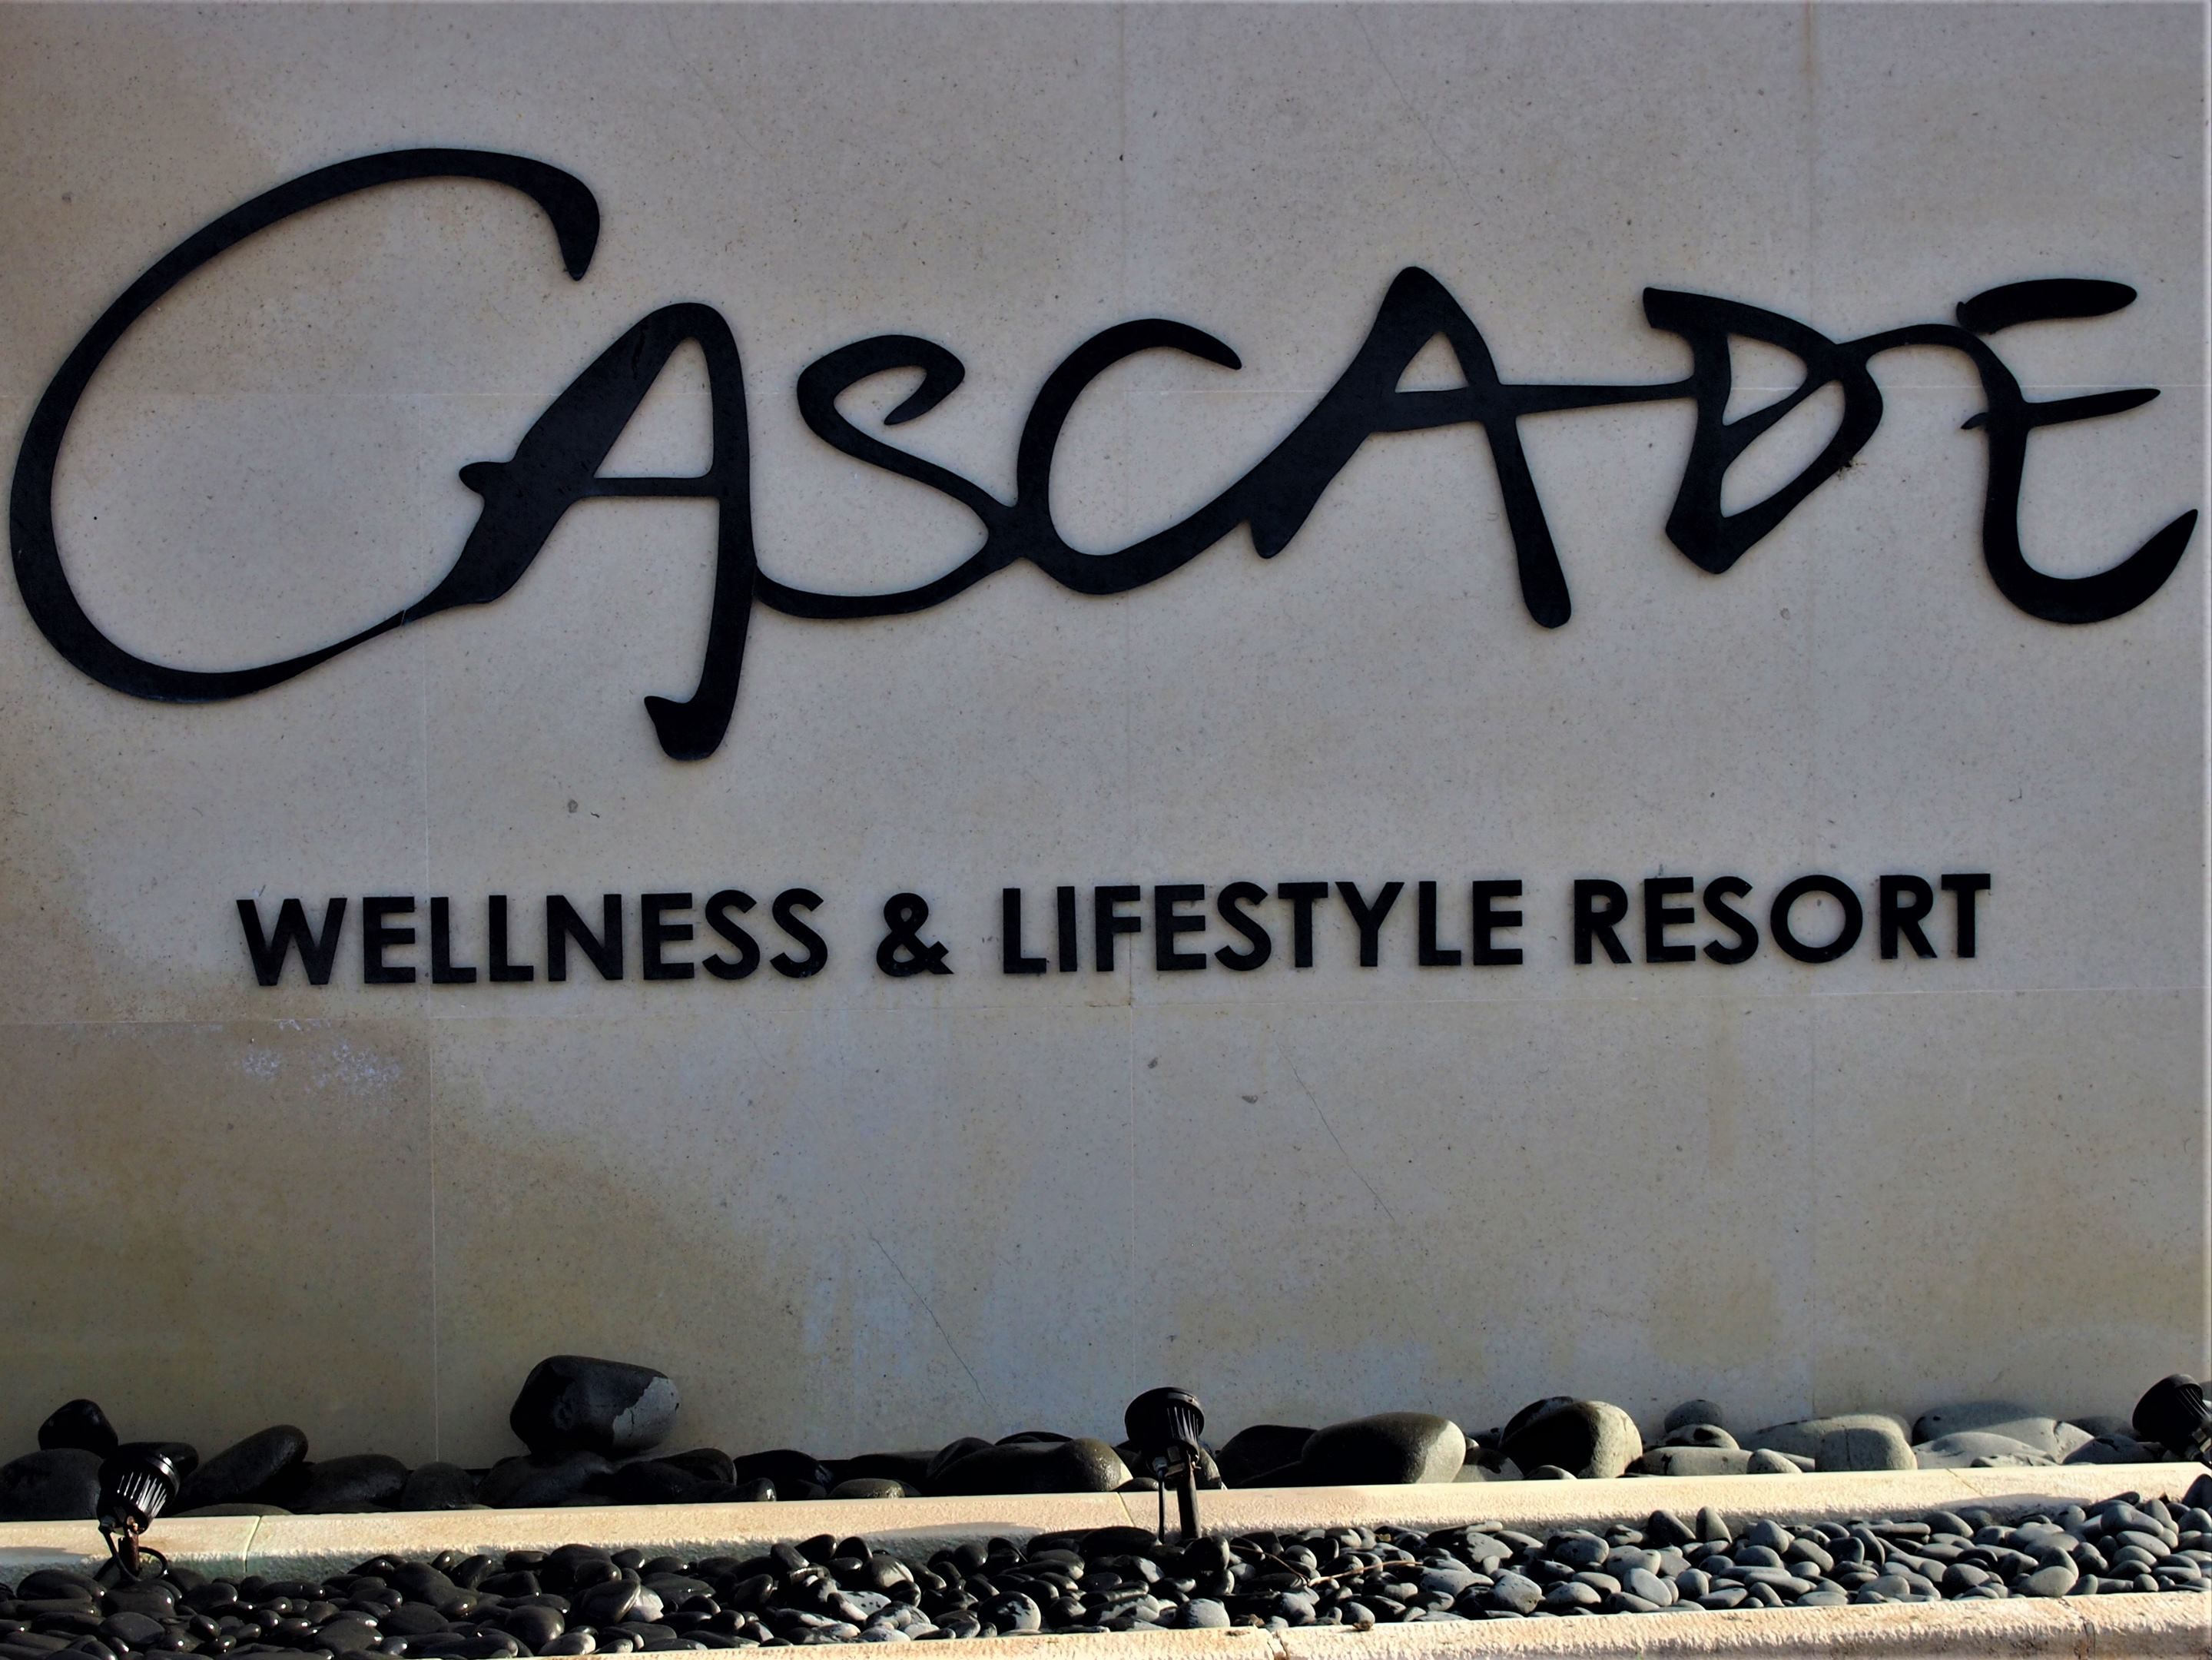 Cascade Wellness and Lifestyle Resort, Lagos